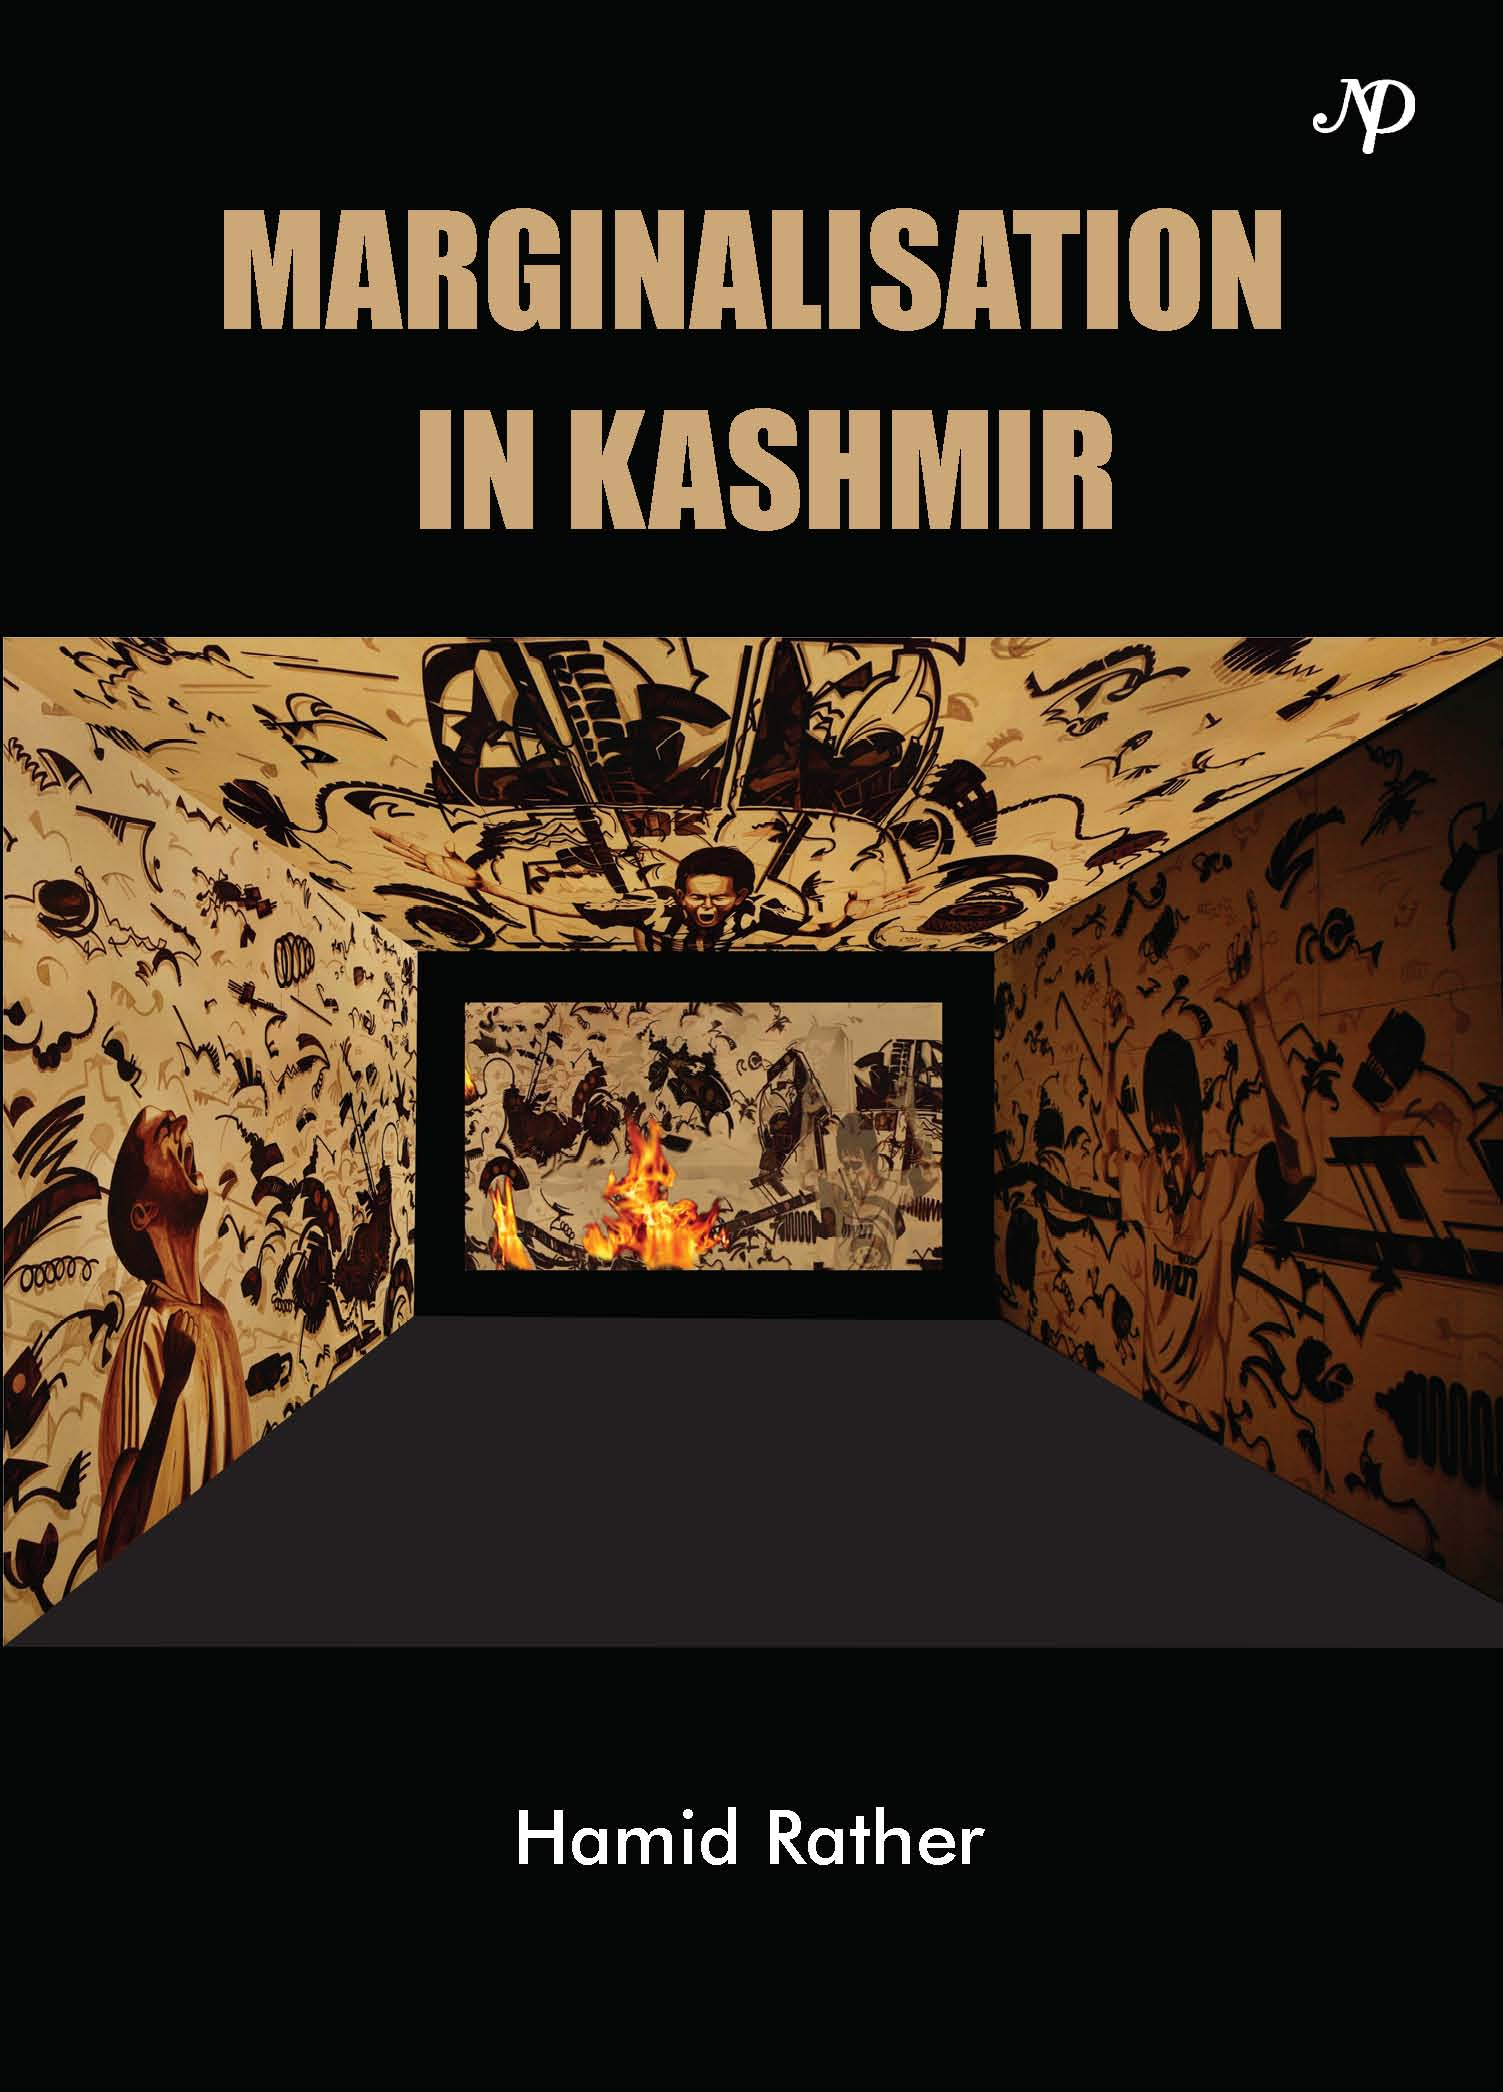 Marginalisation in Kashmir